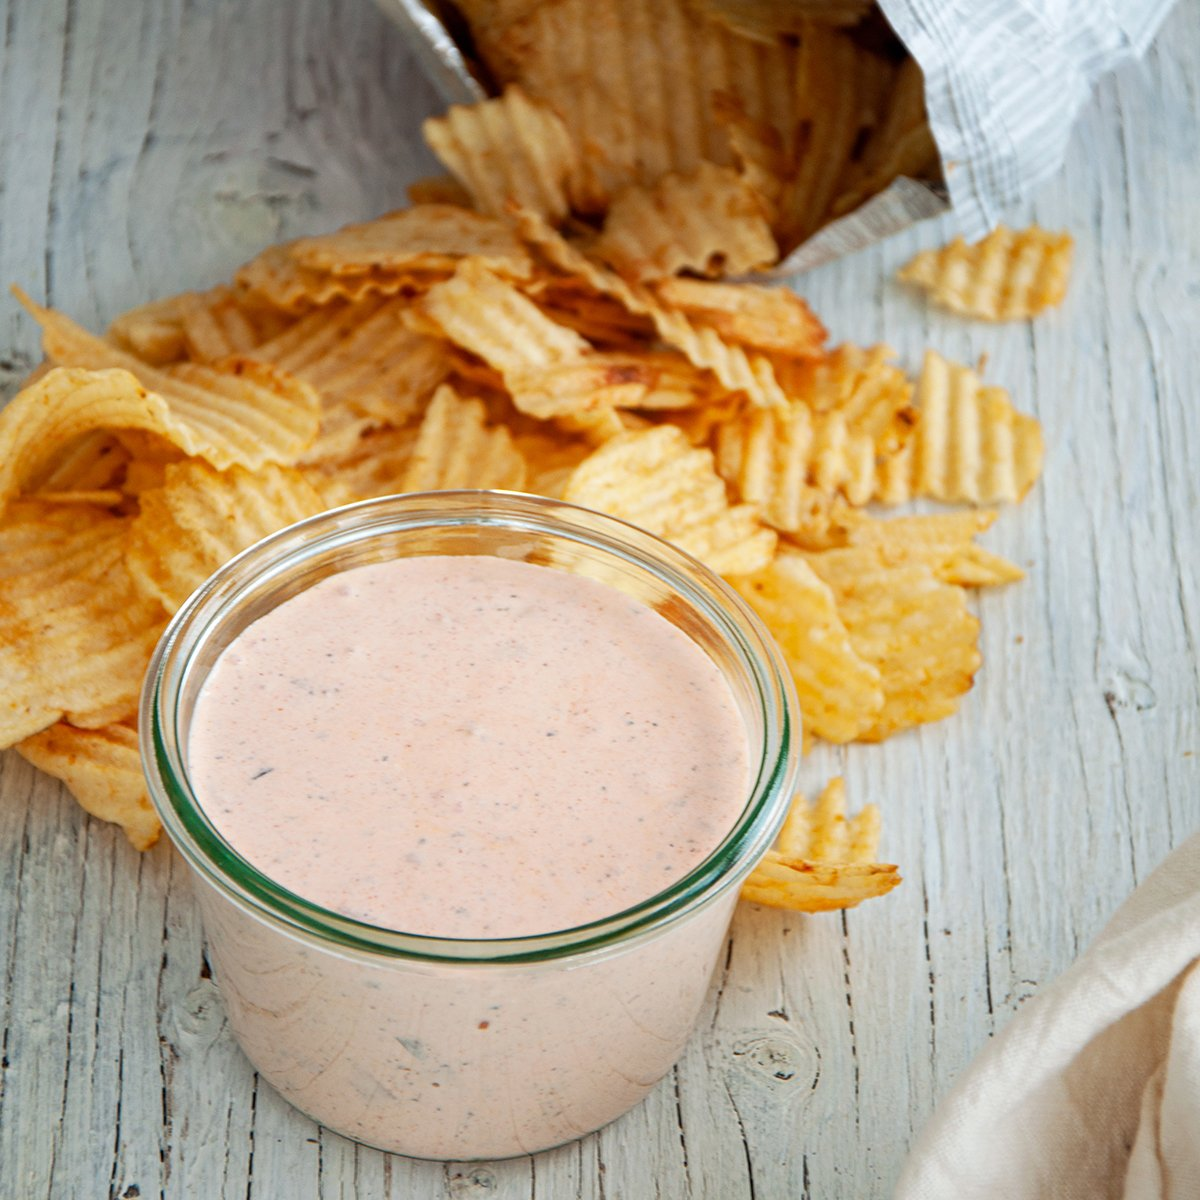 Mason jar filled with chip dip recipe on a white table with potato chips laying around it.